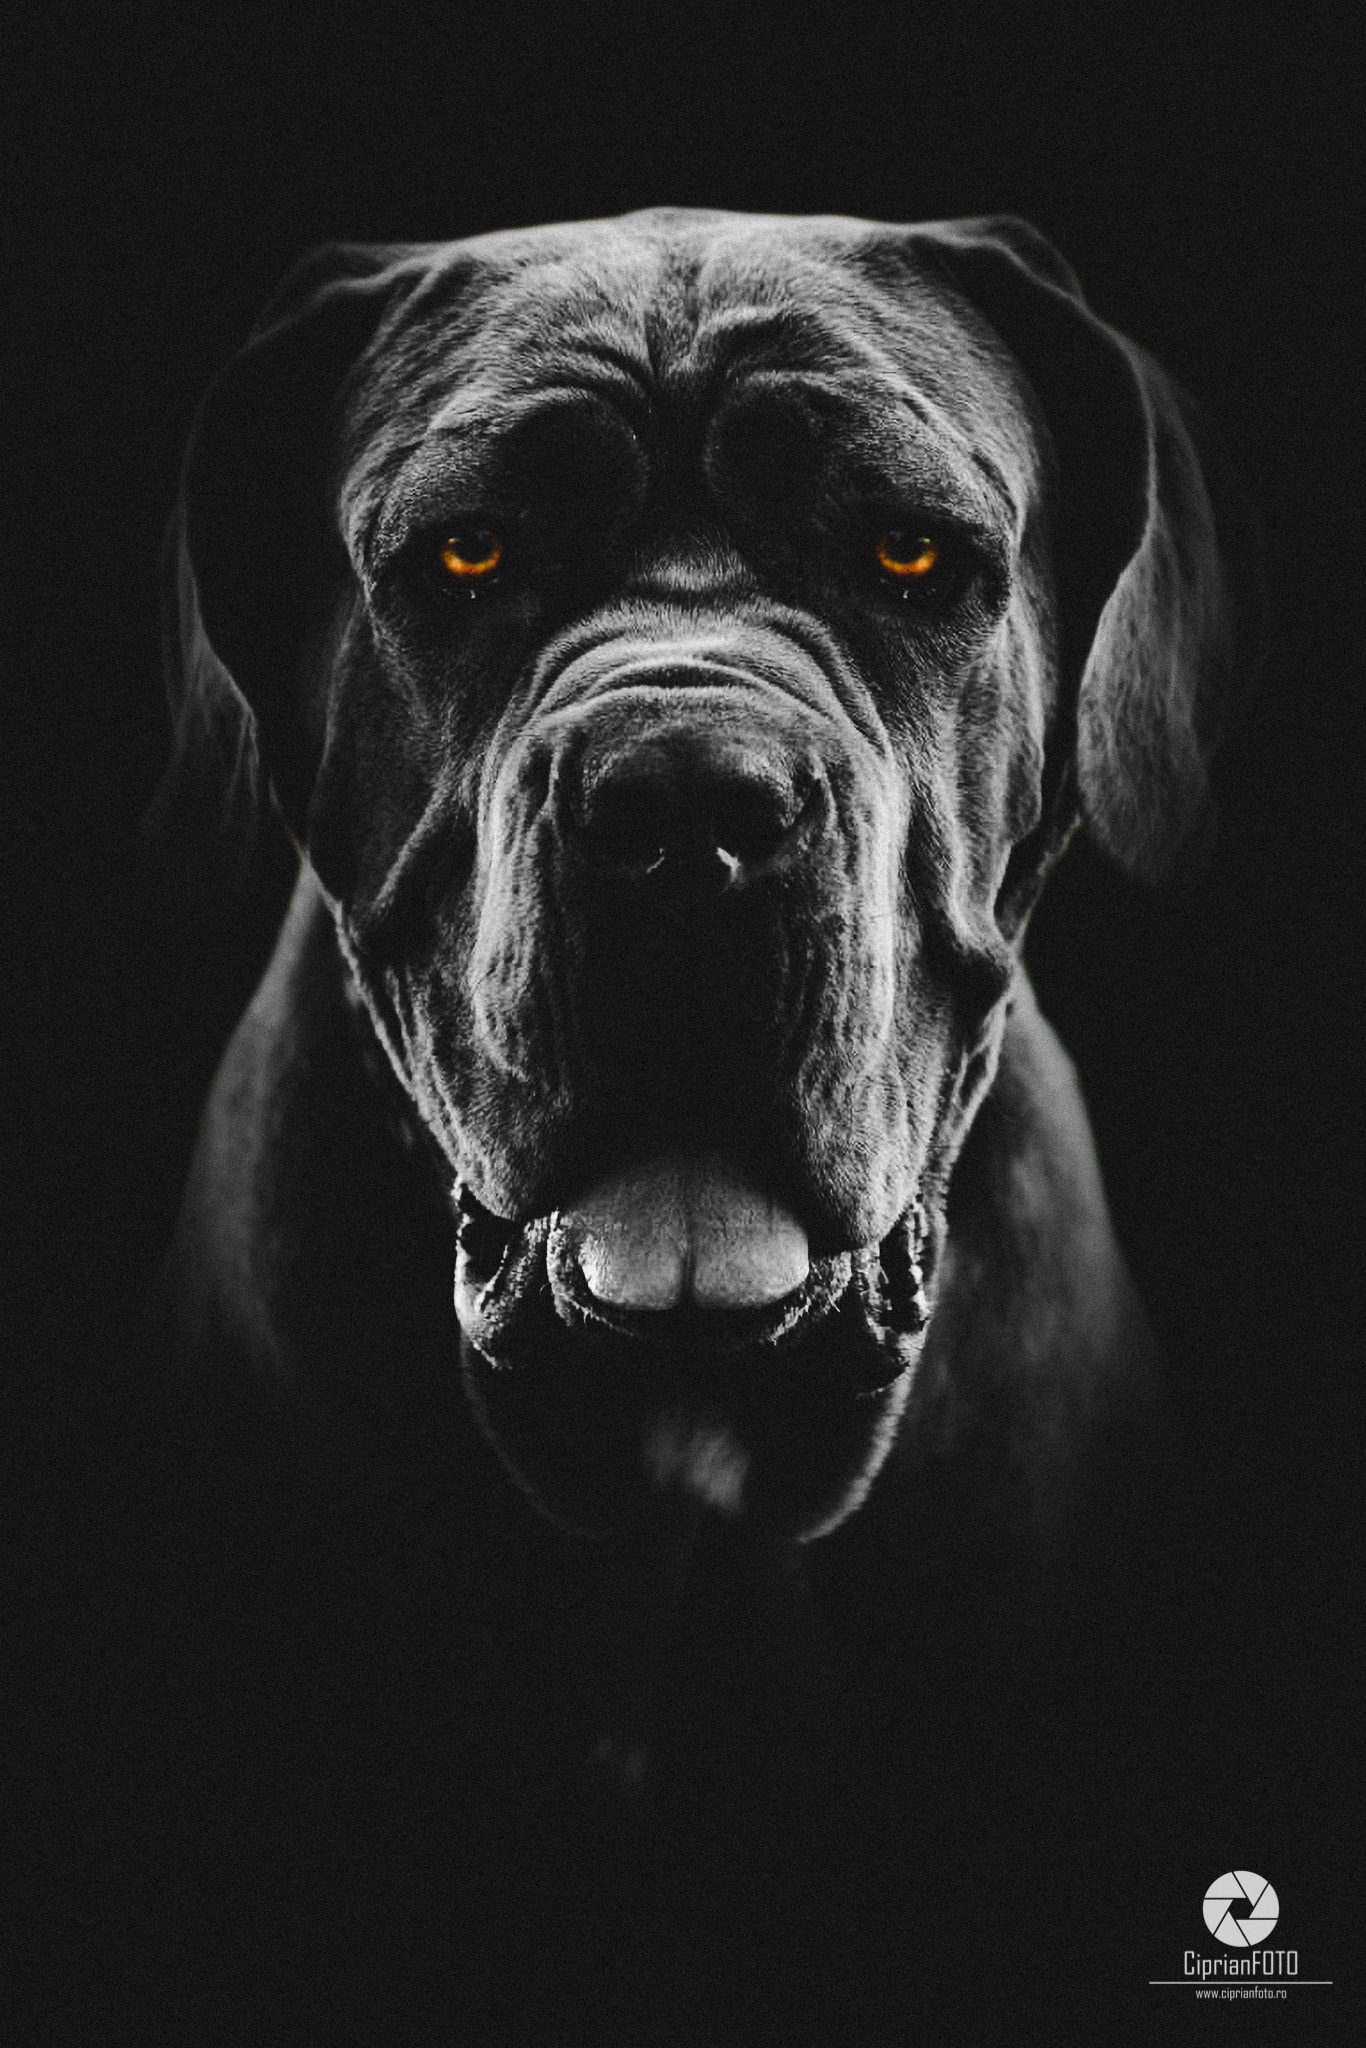 Neapolitan Mastiff Portrait, Photoshop Manipulation Tutorial, CiprianFOTO